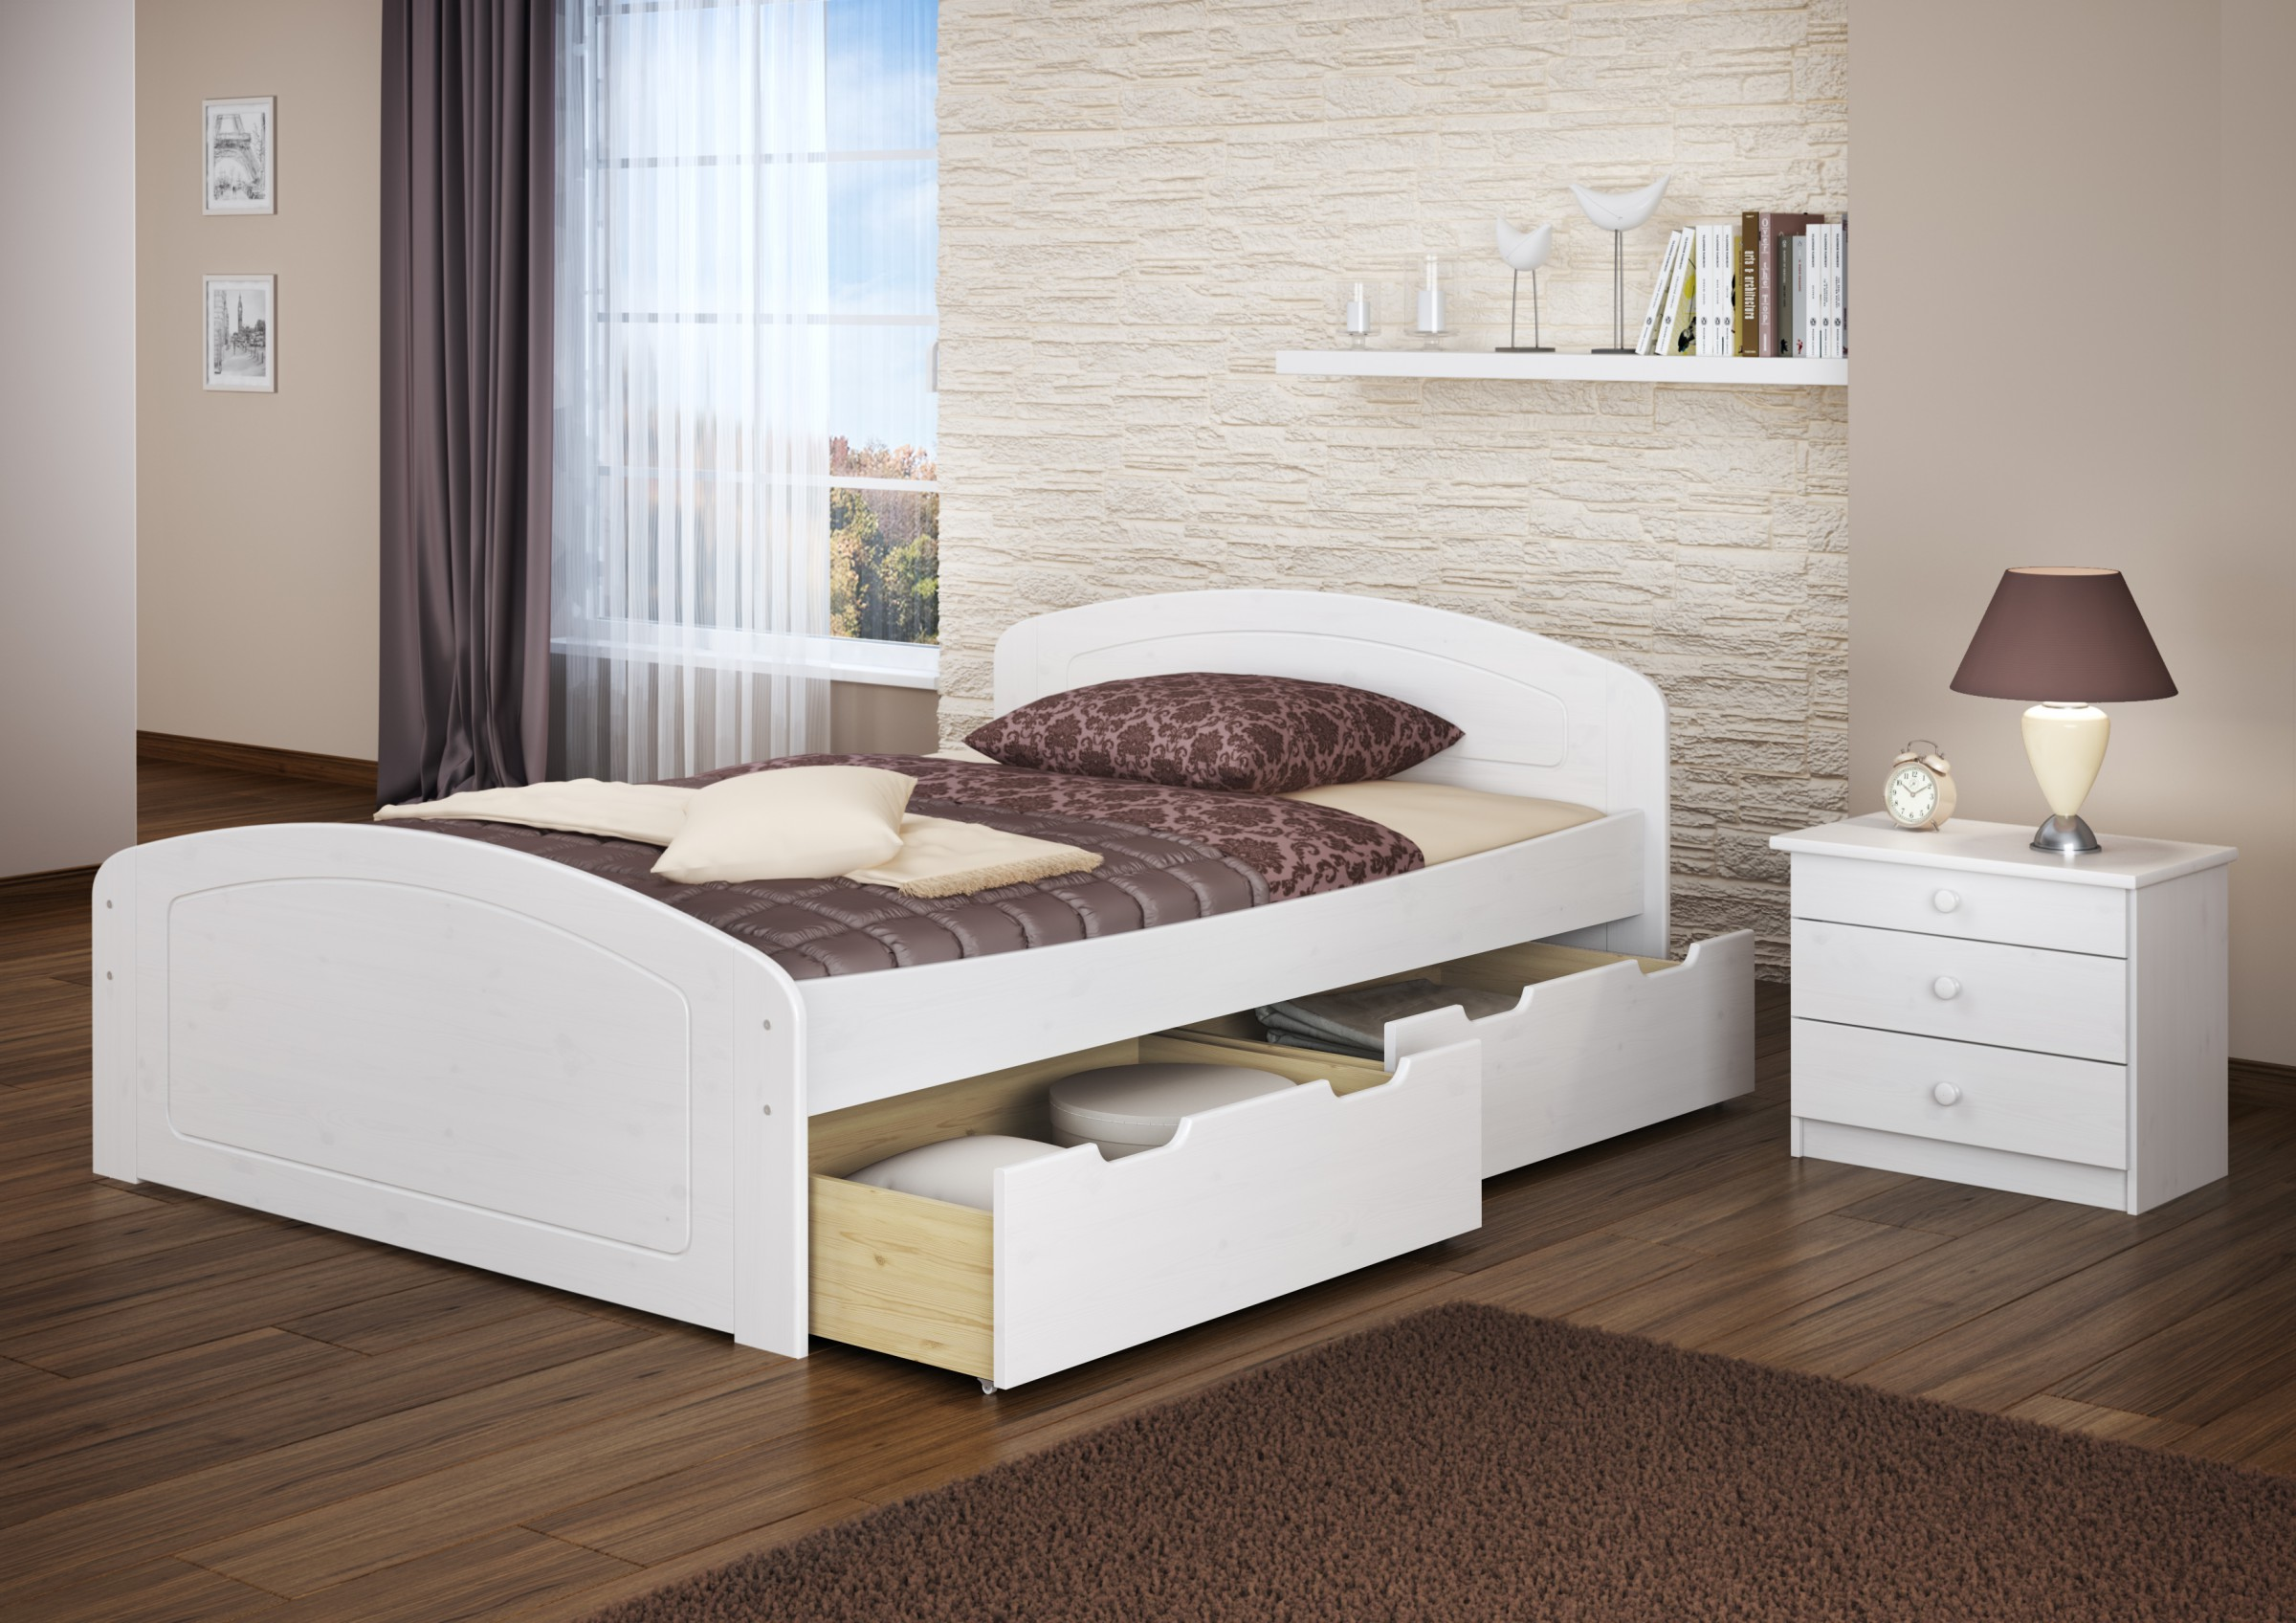 doppelbett 3 bettkasten 200x200 seniorenbett massivholz wei w or ebay. Black Bedroom Furniture Sets. Home Design Ideas